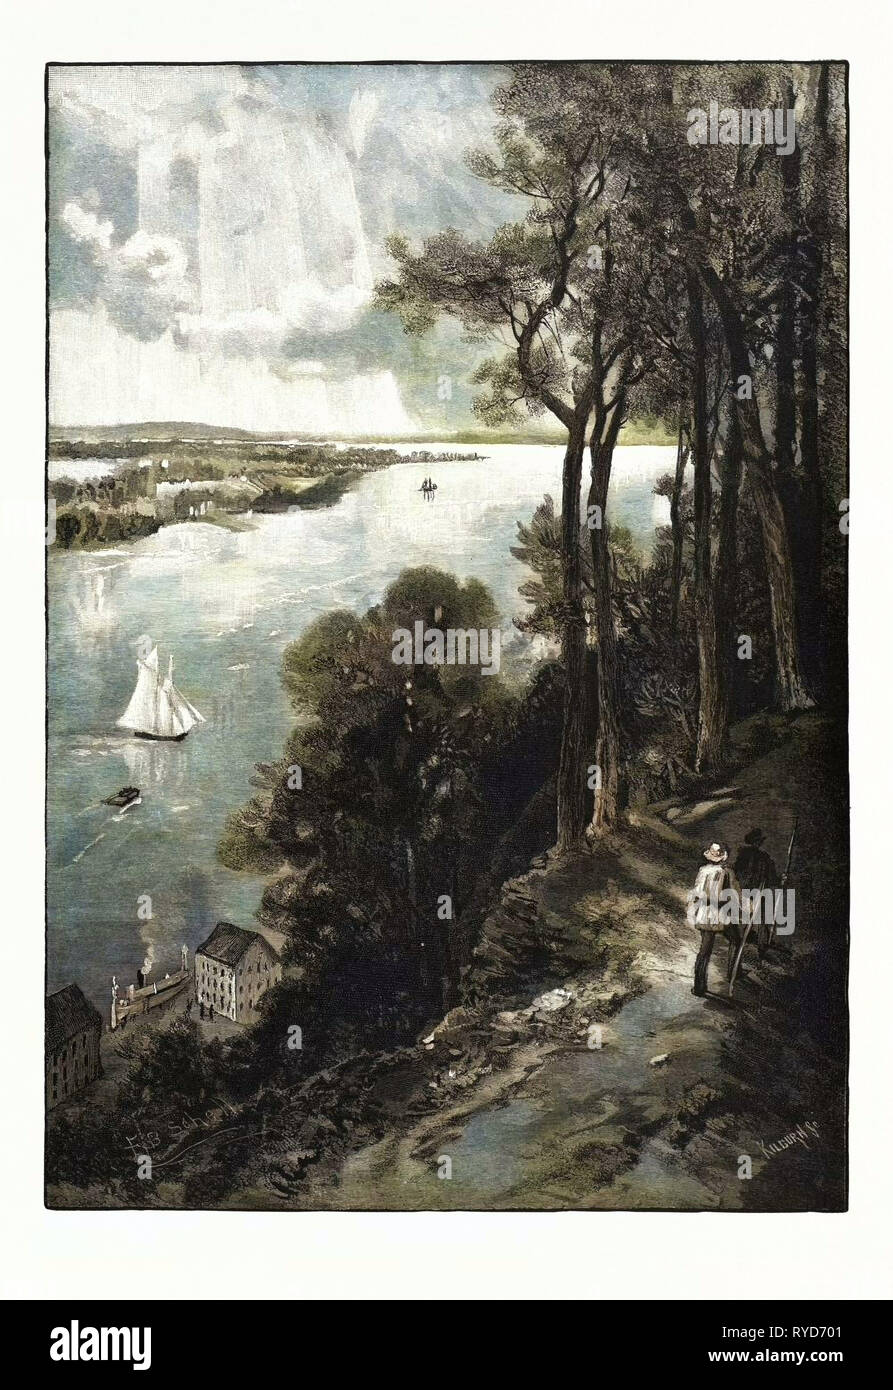 Bay of Quinte, from above Stone Mills, Canada, Nineteenth Century Engraving - Stock Image